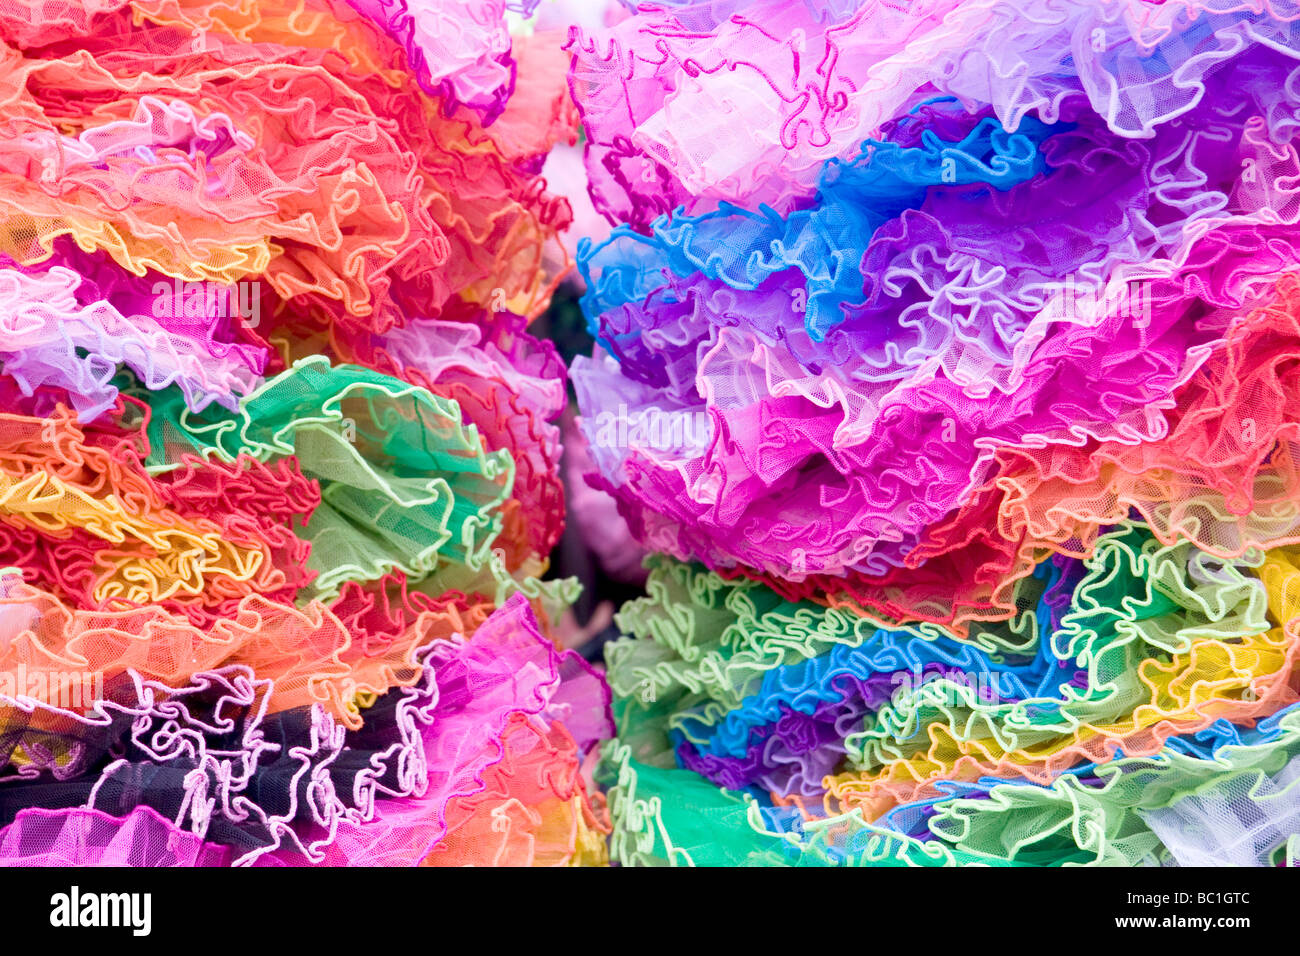 Colourful fairy skirts for sale, The Strawberry Fair, Midsummer Common, Cambridge, England - Stock Image